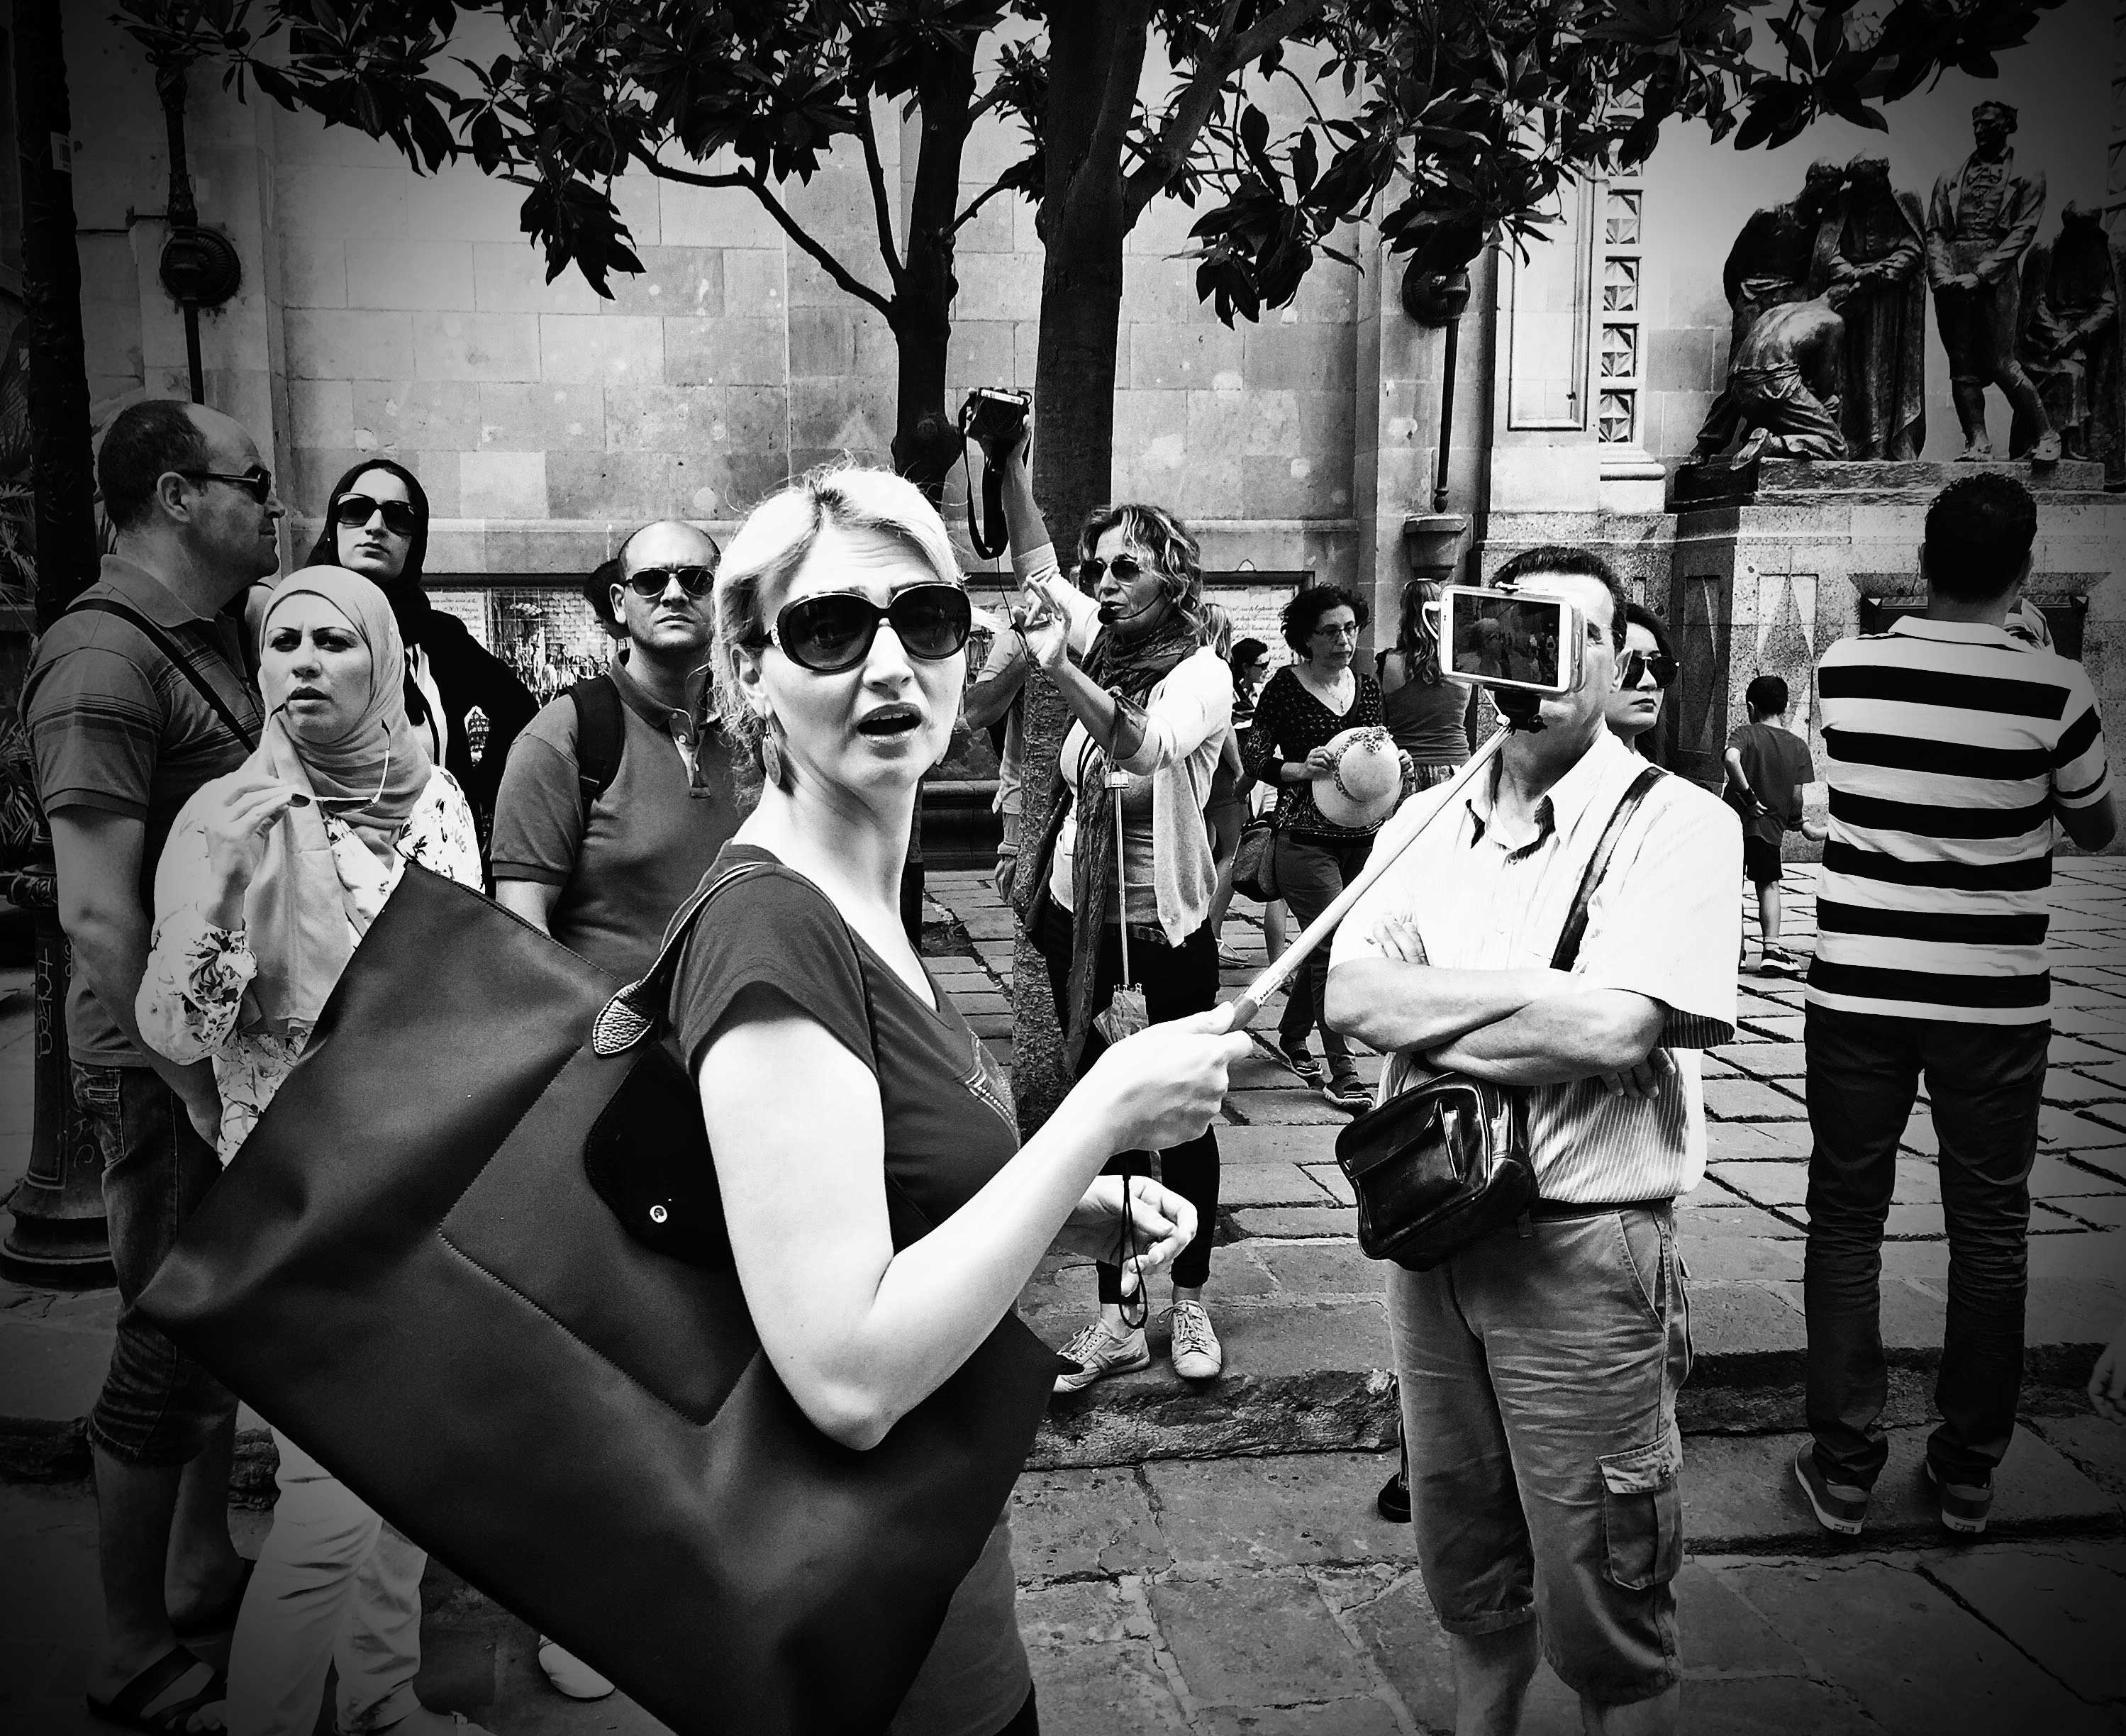 refocus your attention - street photography